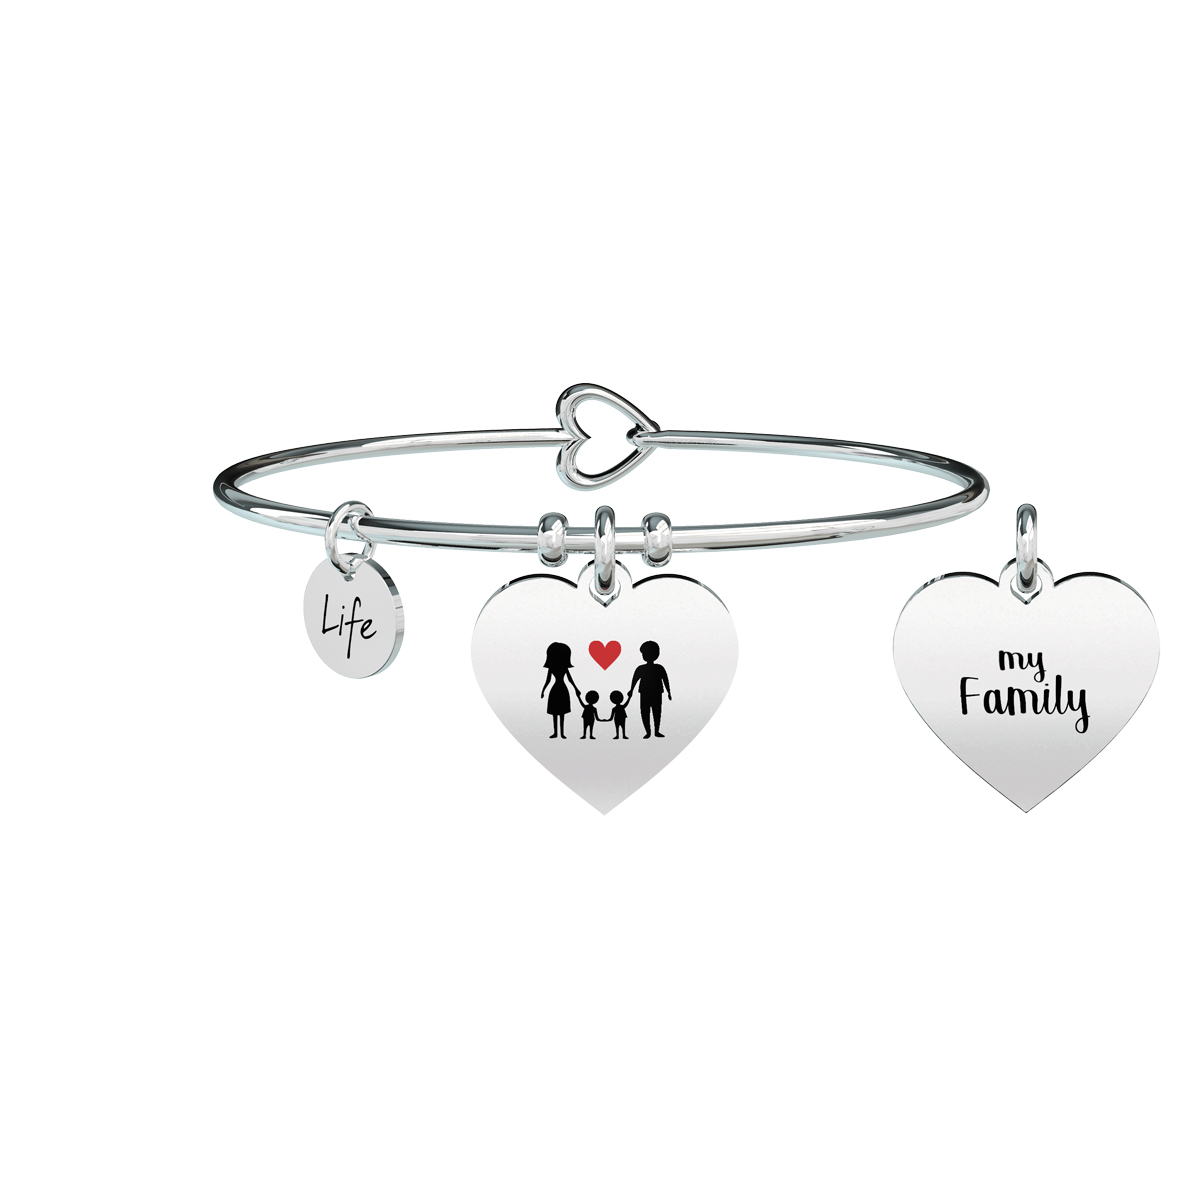 Bracciale KIDULT 731629 family acciaio 316L cuore my family